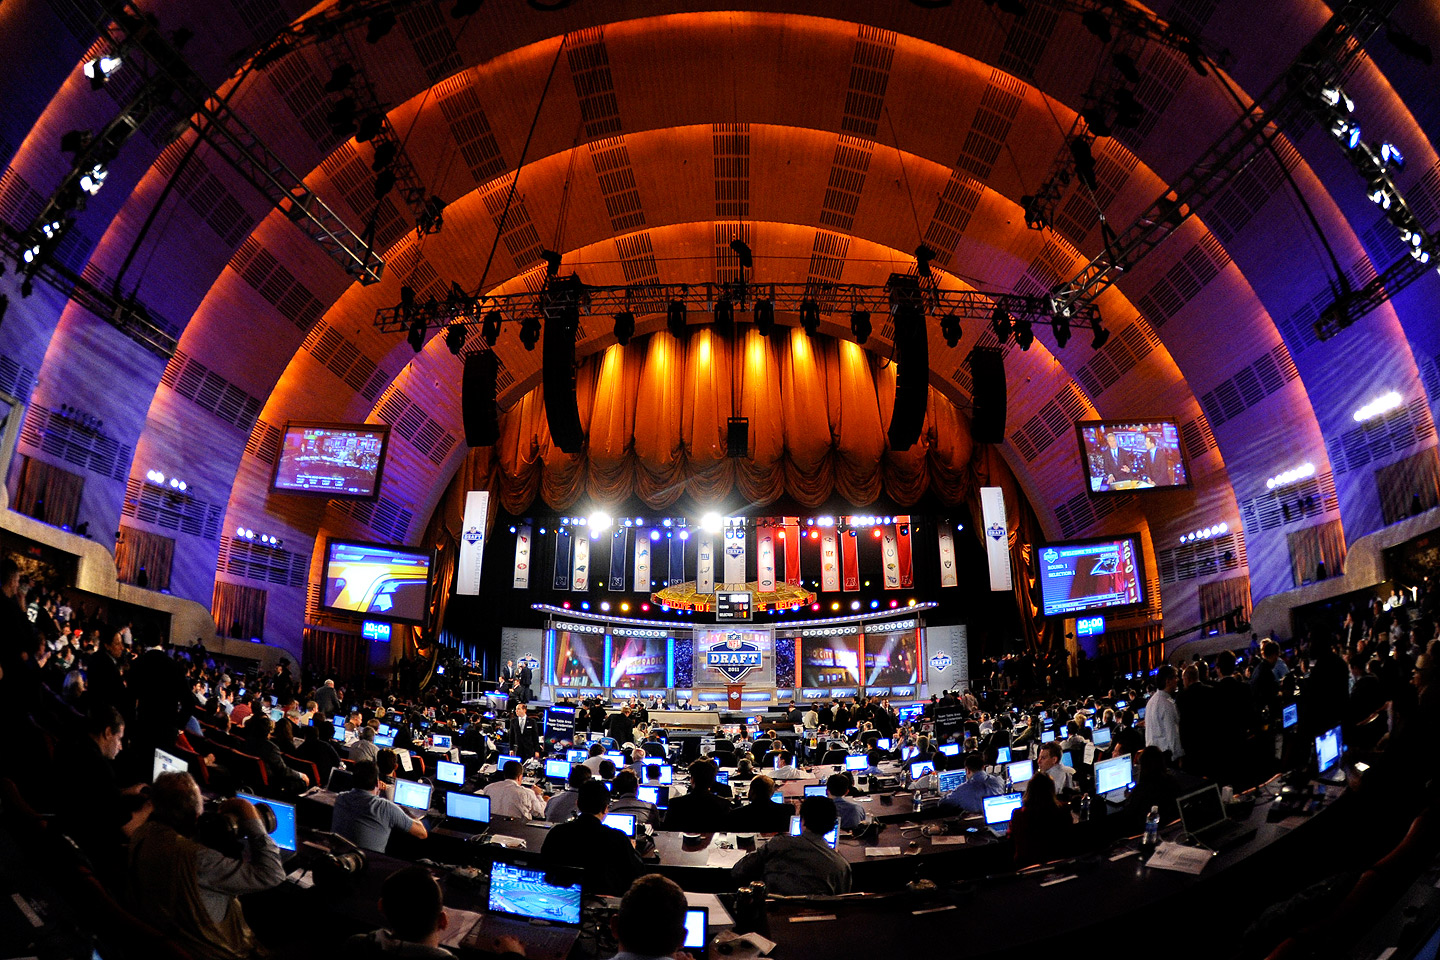 NFL DRAFT 2014 at the Radio City Music Hall